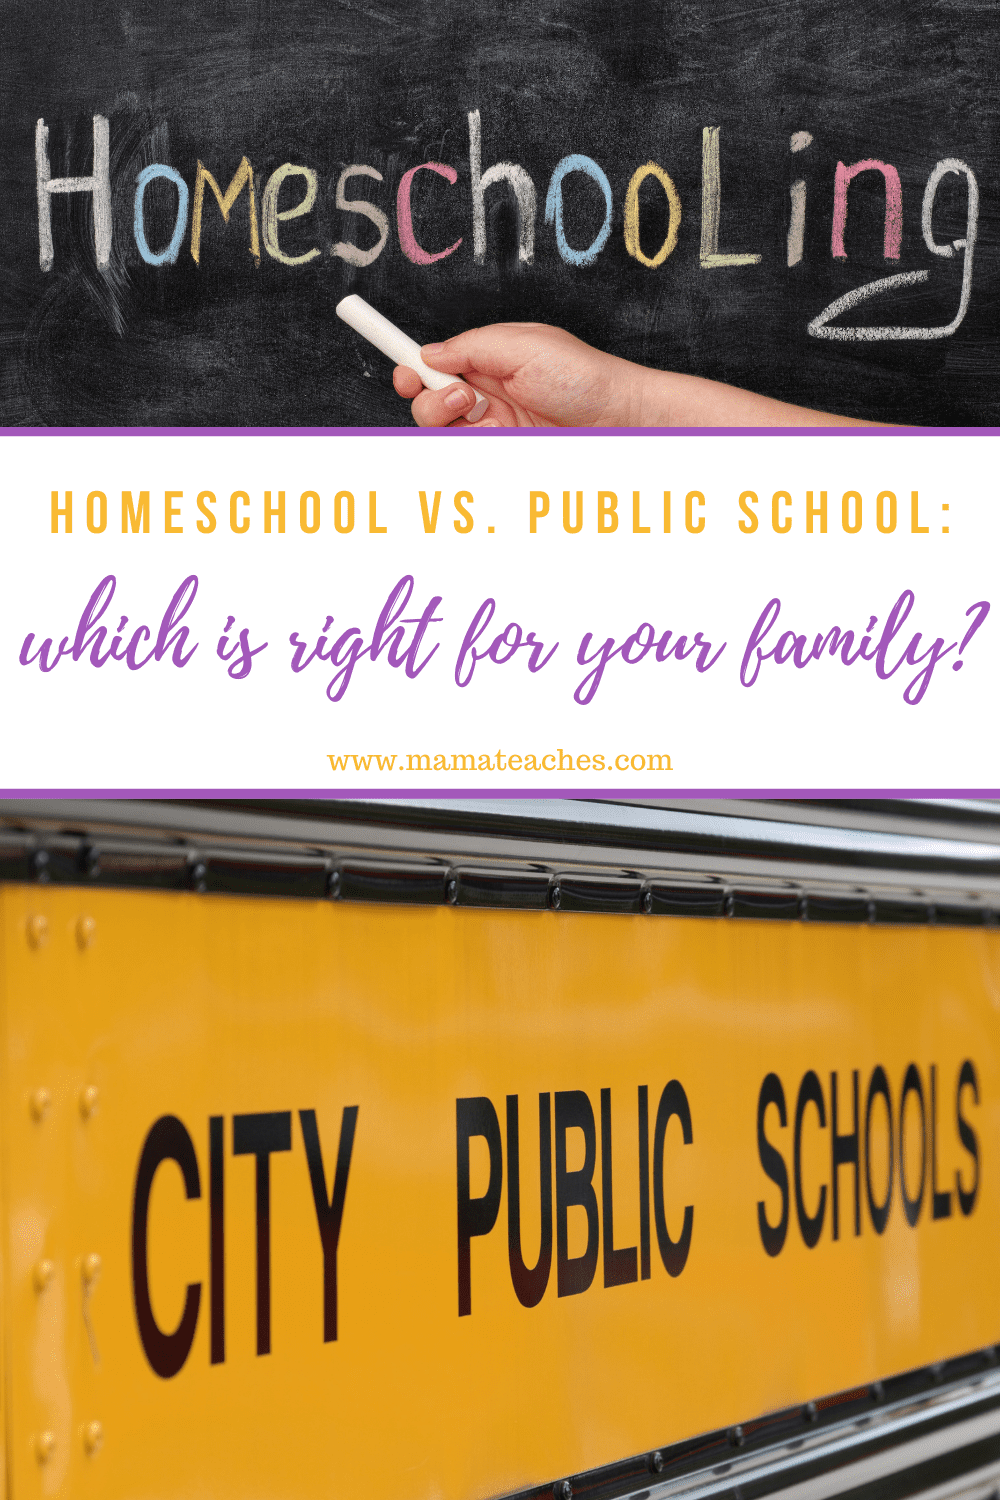 Homeschool vs. Public School - Which is Right for Your Family?